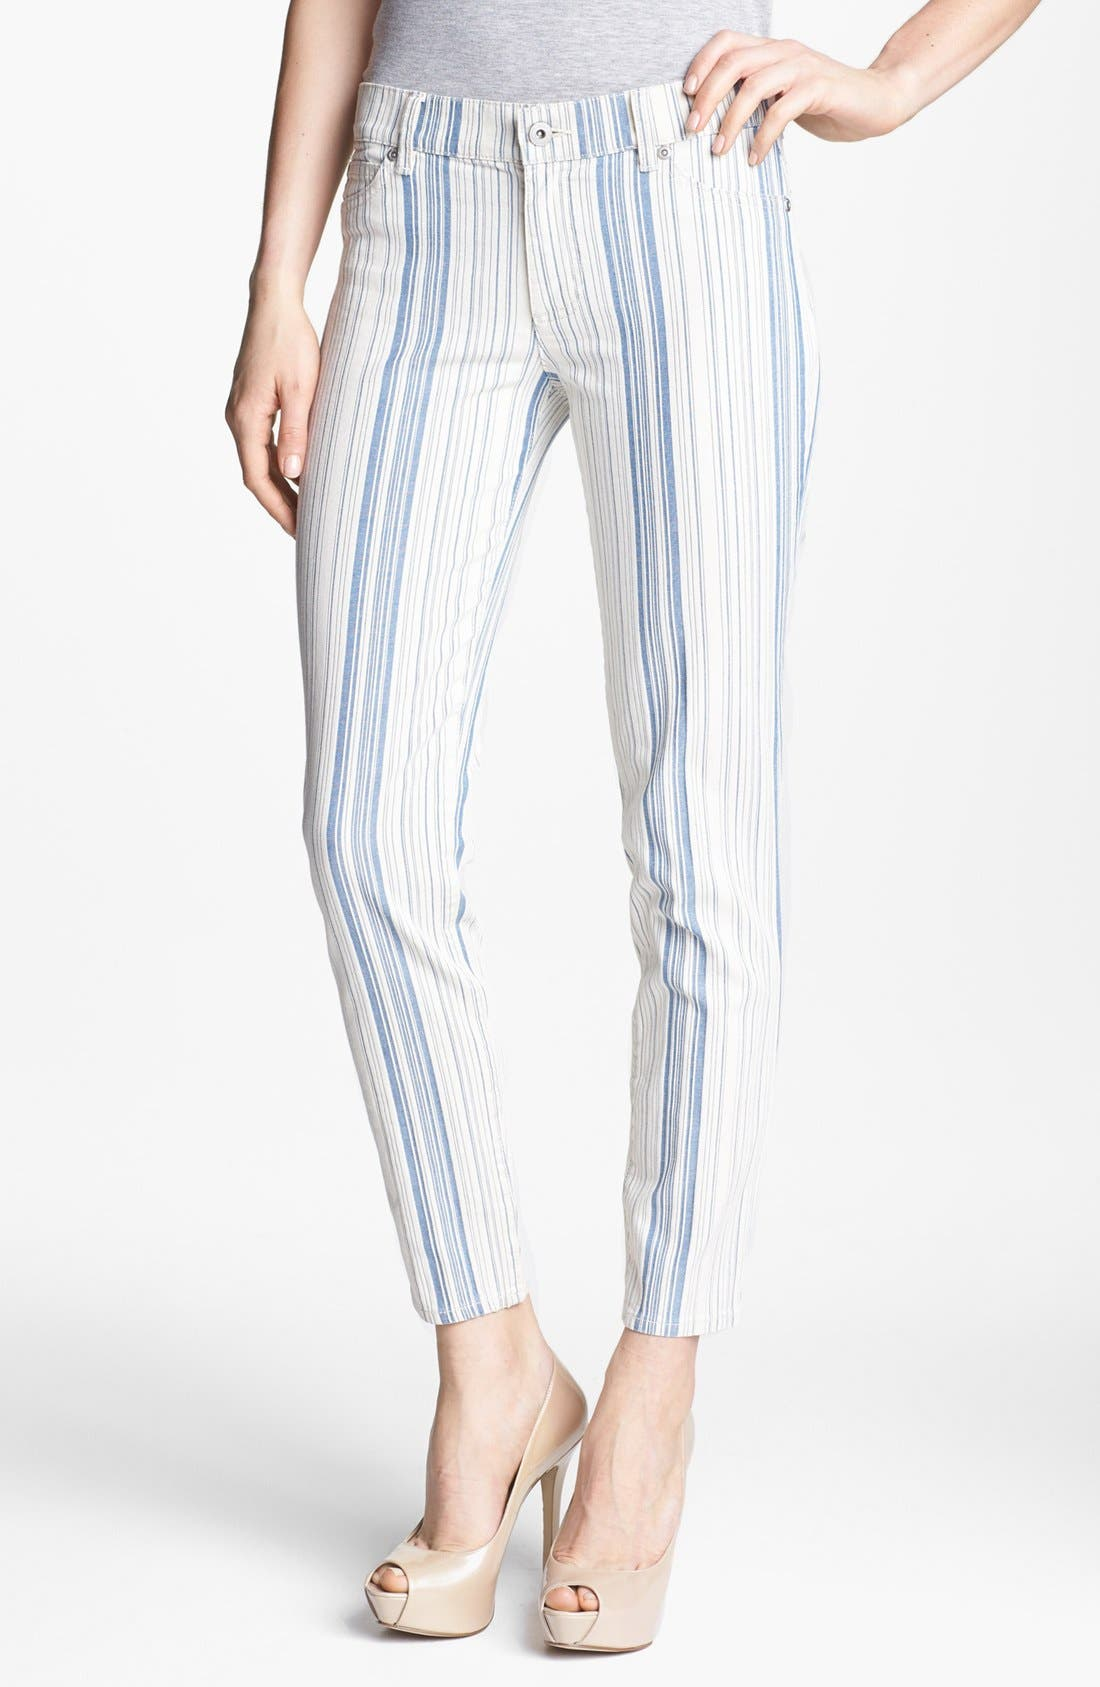 Alternate Image 1 Selected - Two by Vince Camuto Variegated Stripe Zip Leg Jeans